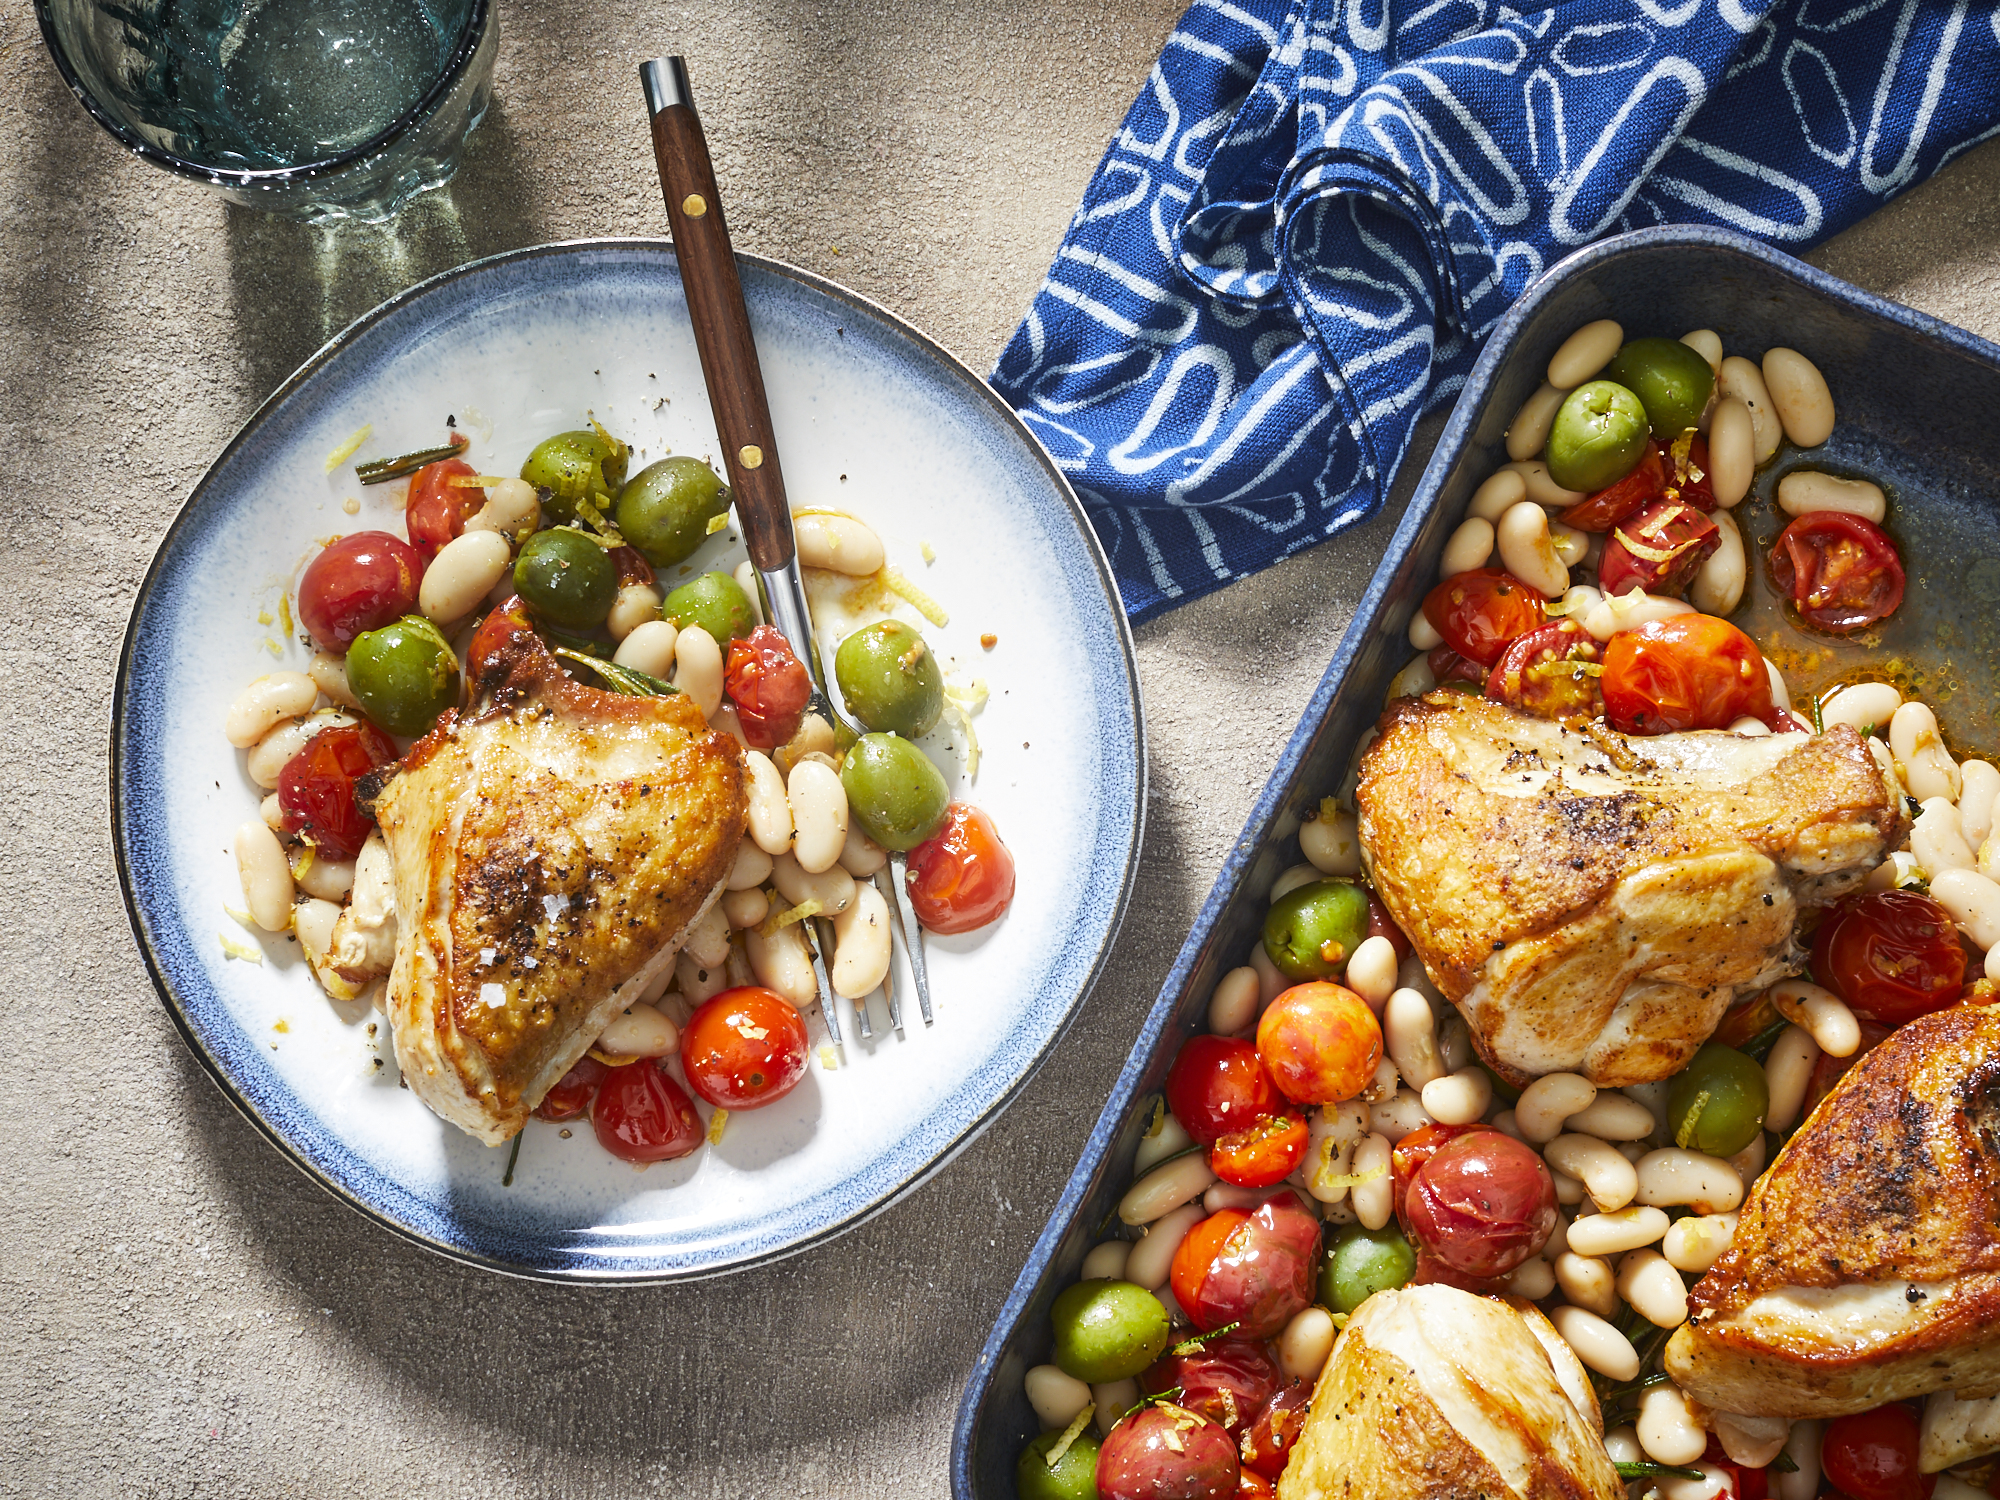 mr-Easy Roasted Chicken Breasts with Tomatoes and White Beans Image